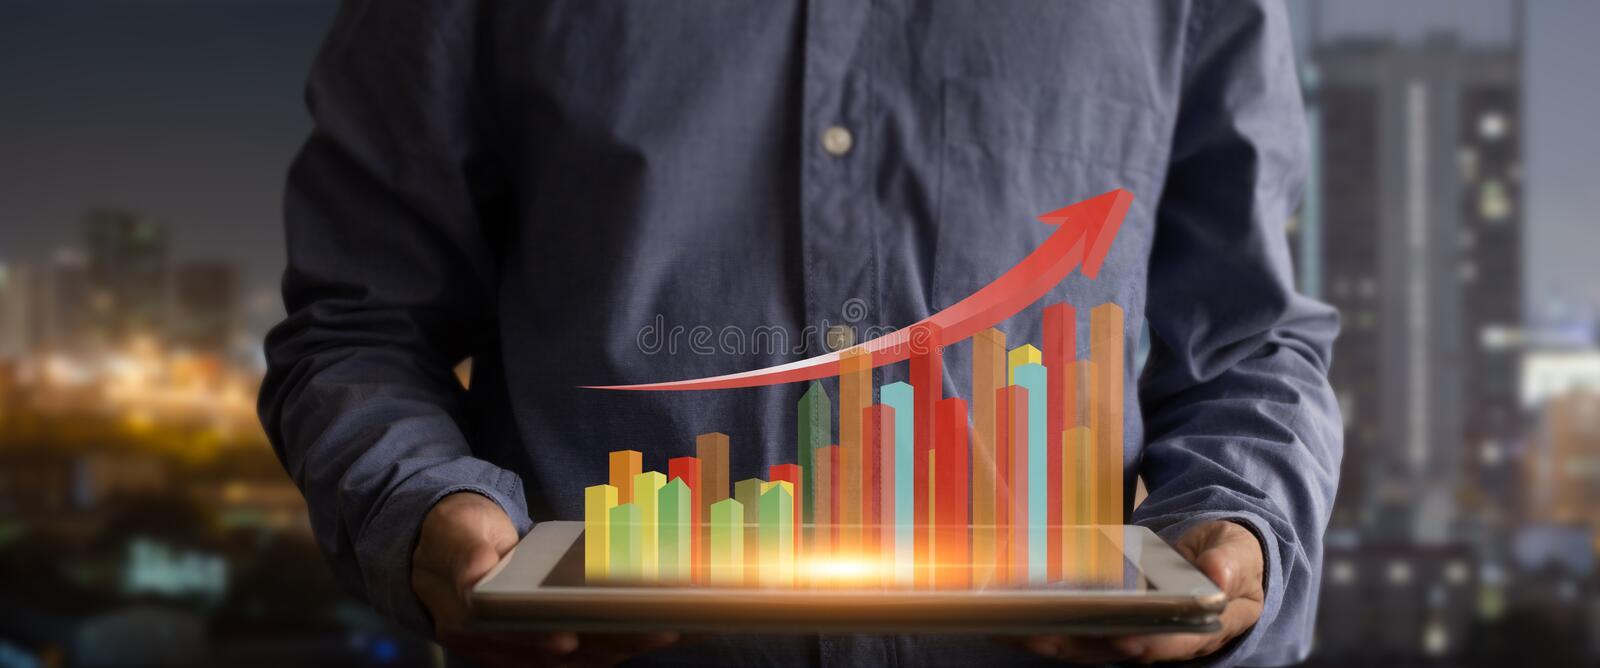 Businessman holding tablet and showing graph of growing hologram royalty free stock image